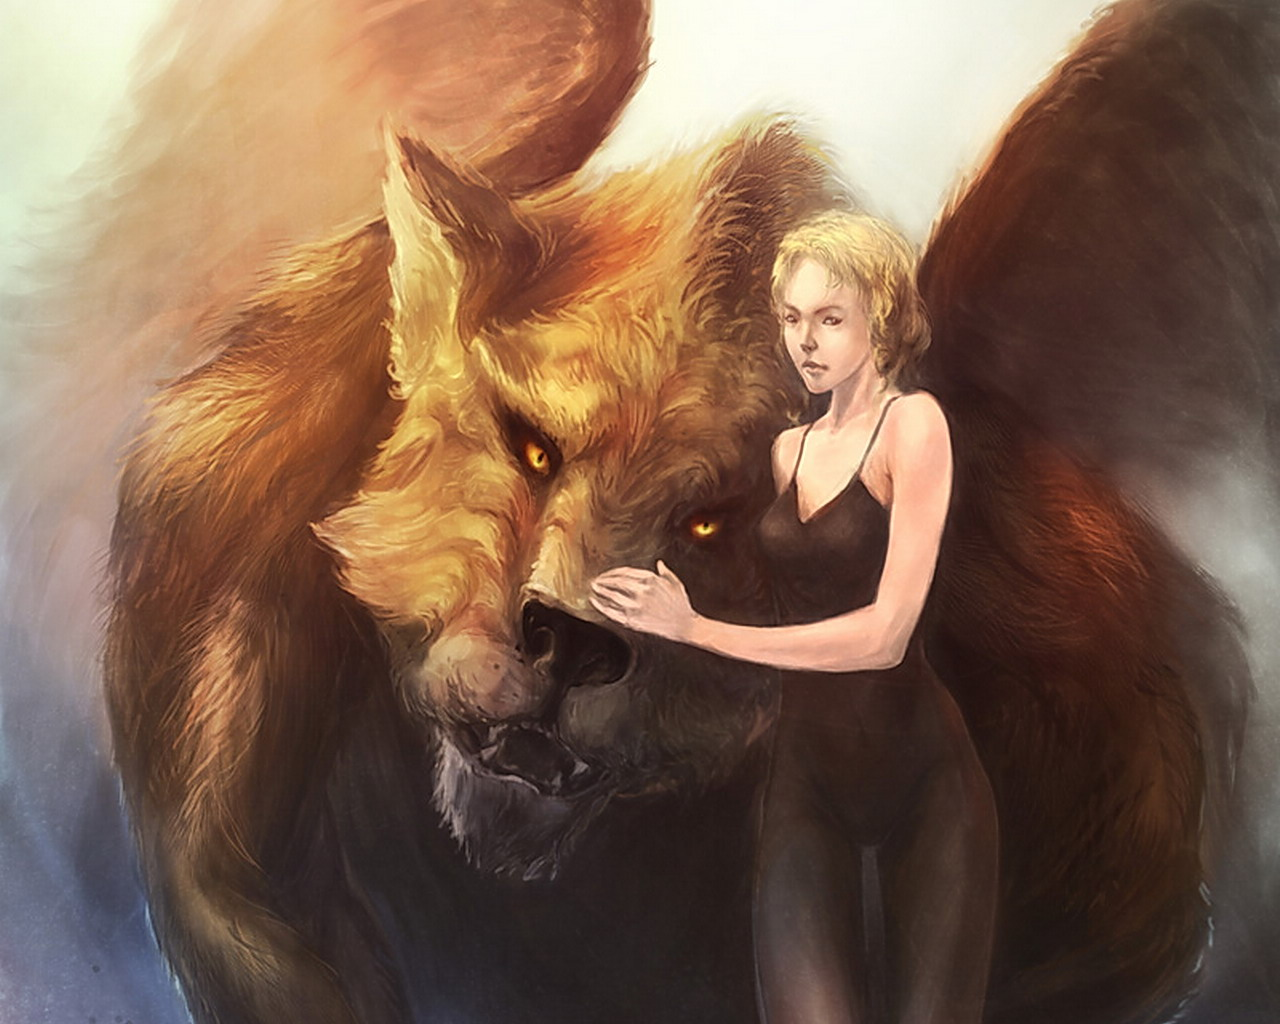 Creature Girl Wallpaper Pacificreview An Annual Review Of Prose Poetry And